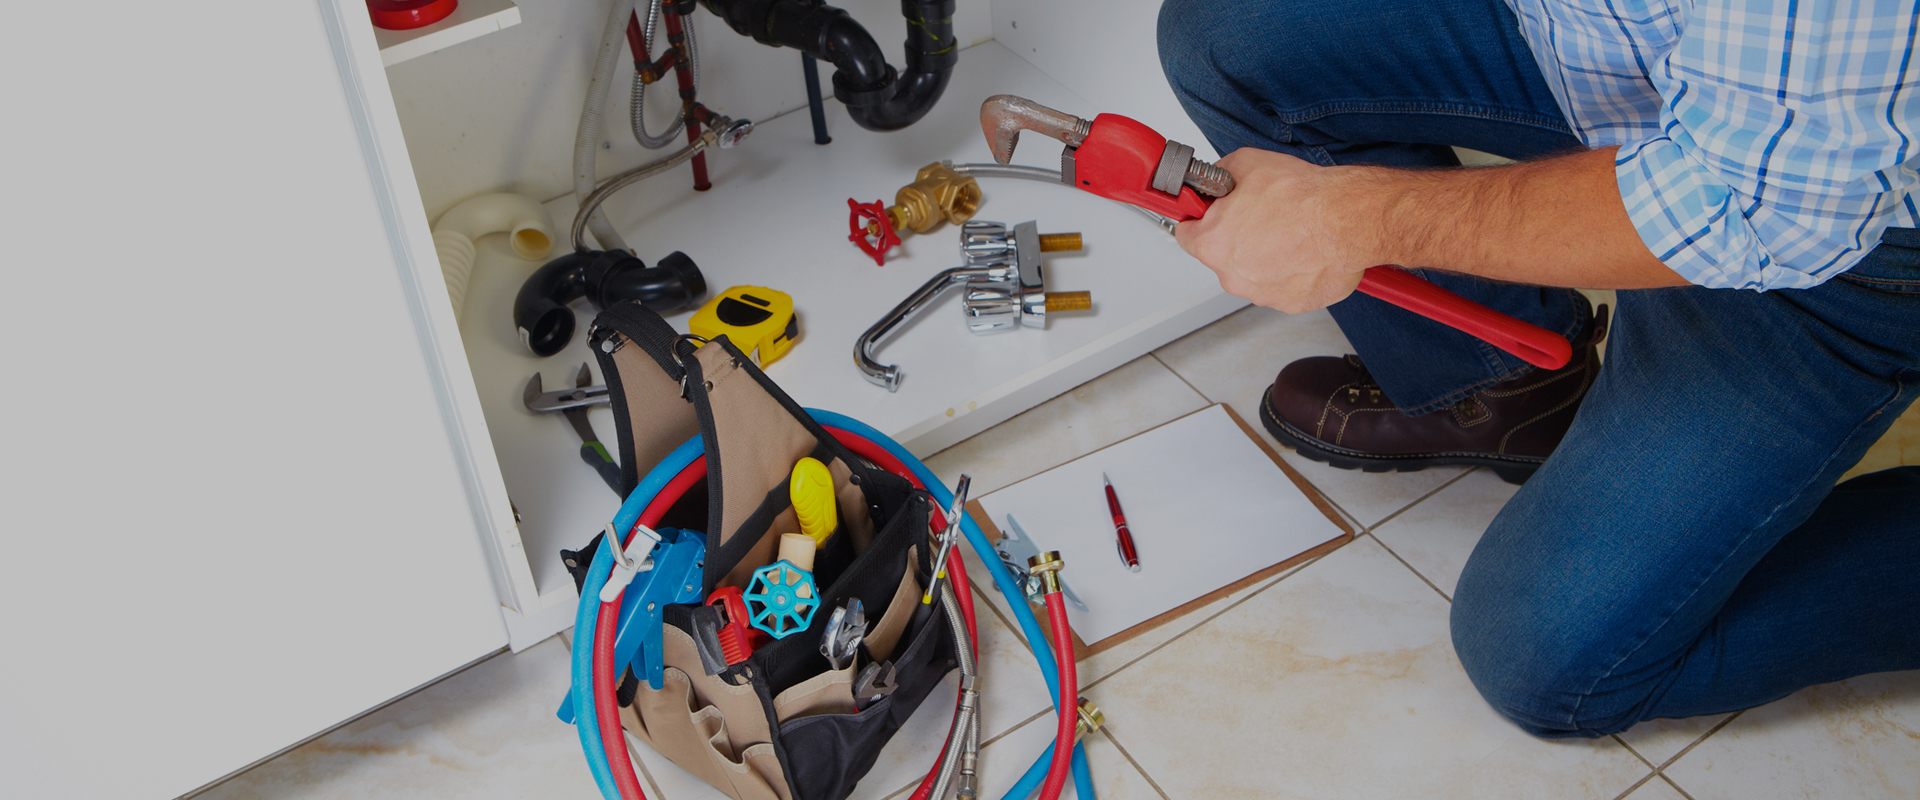 Plumbing Repair Contractor Fixing Sink